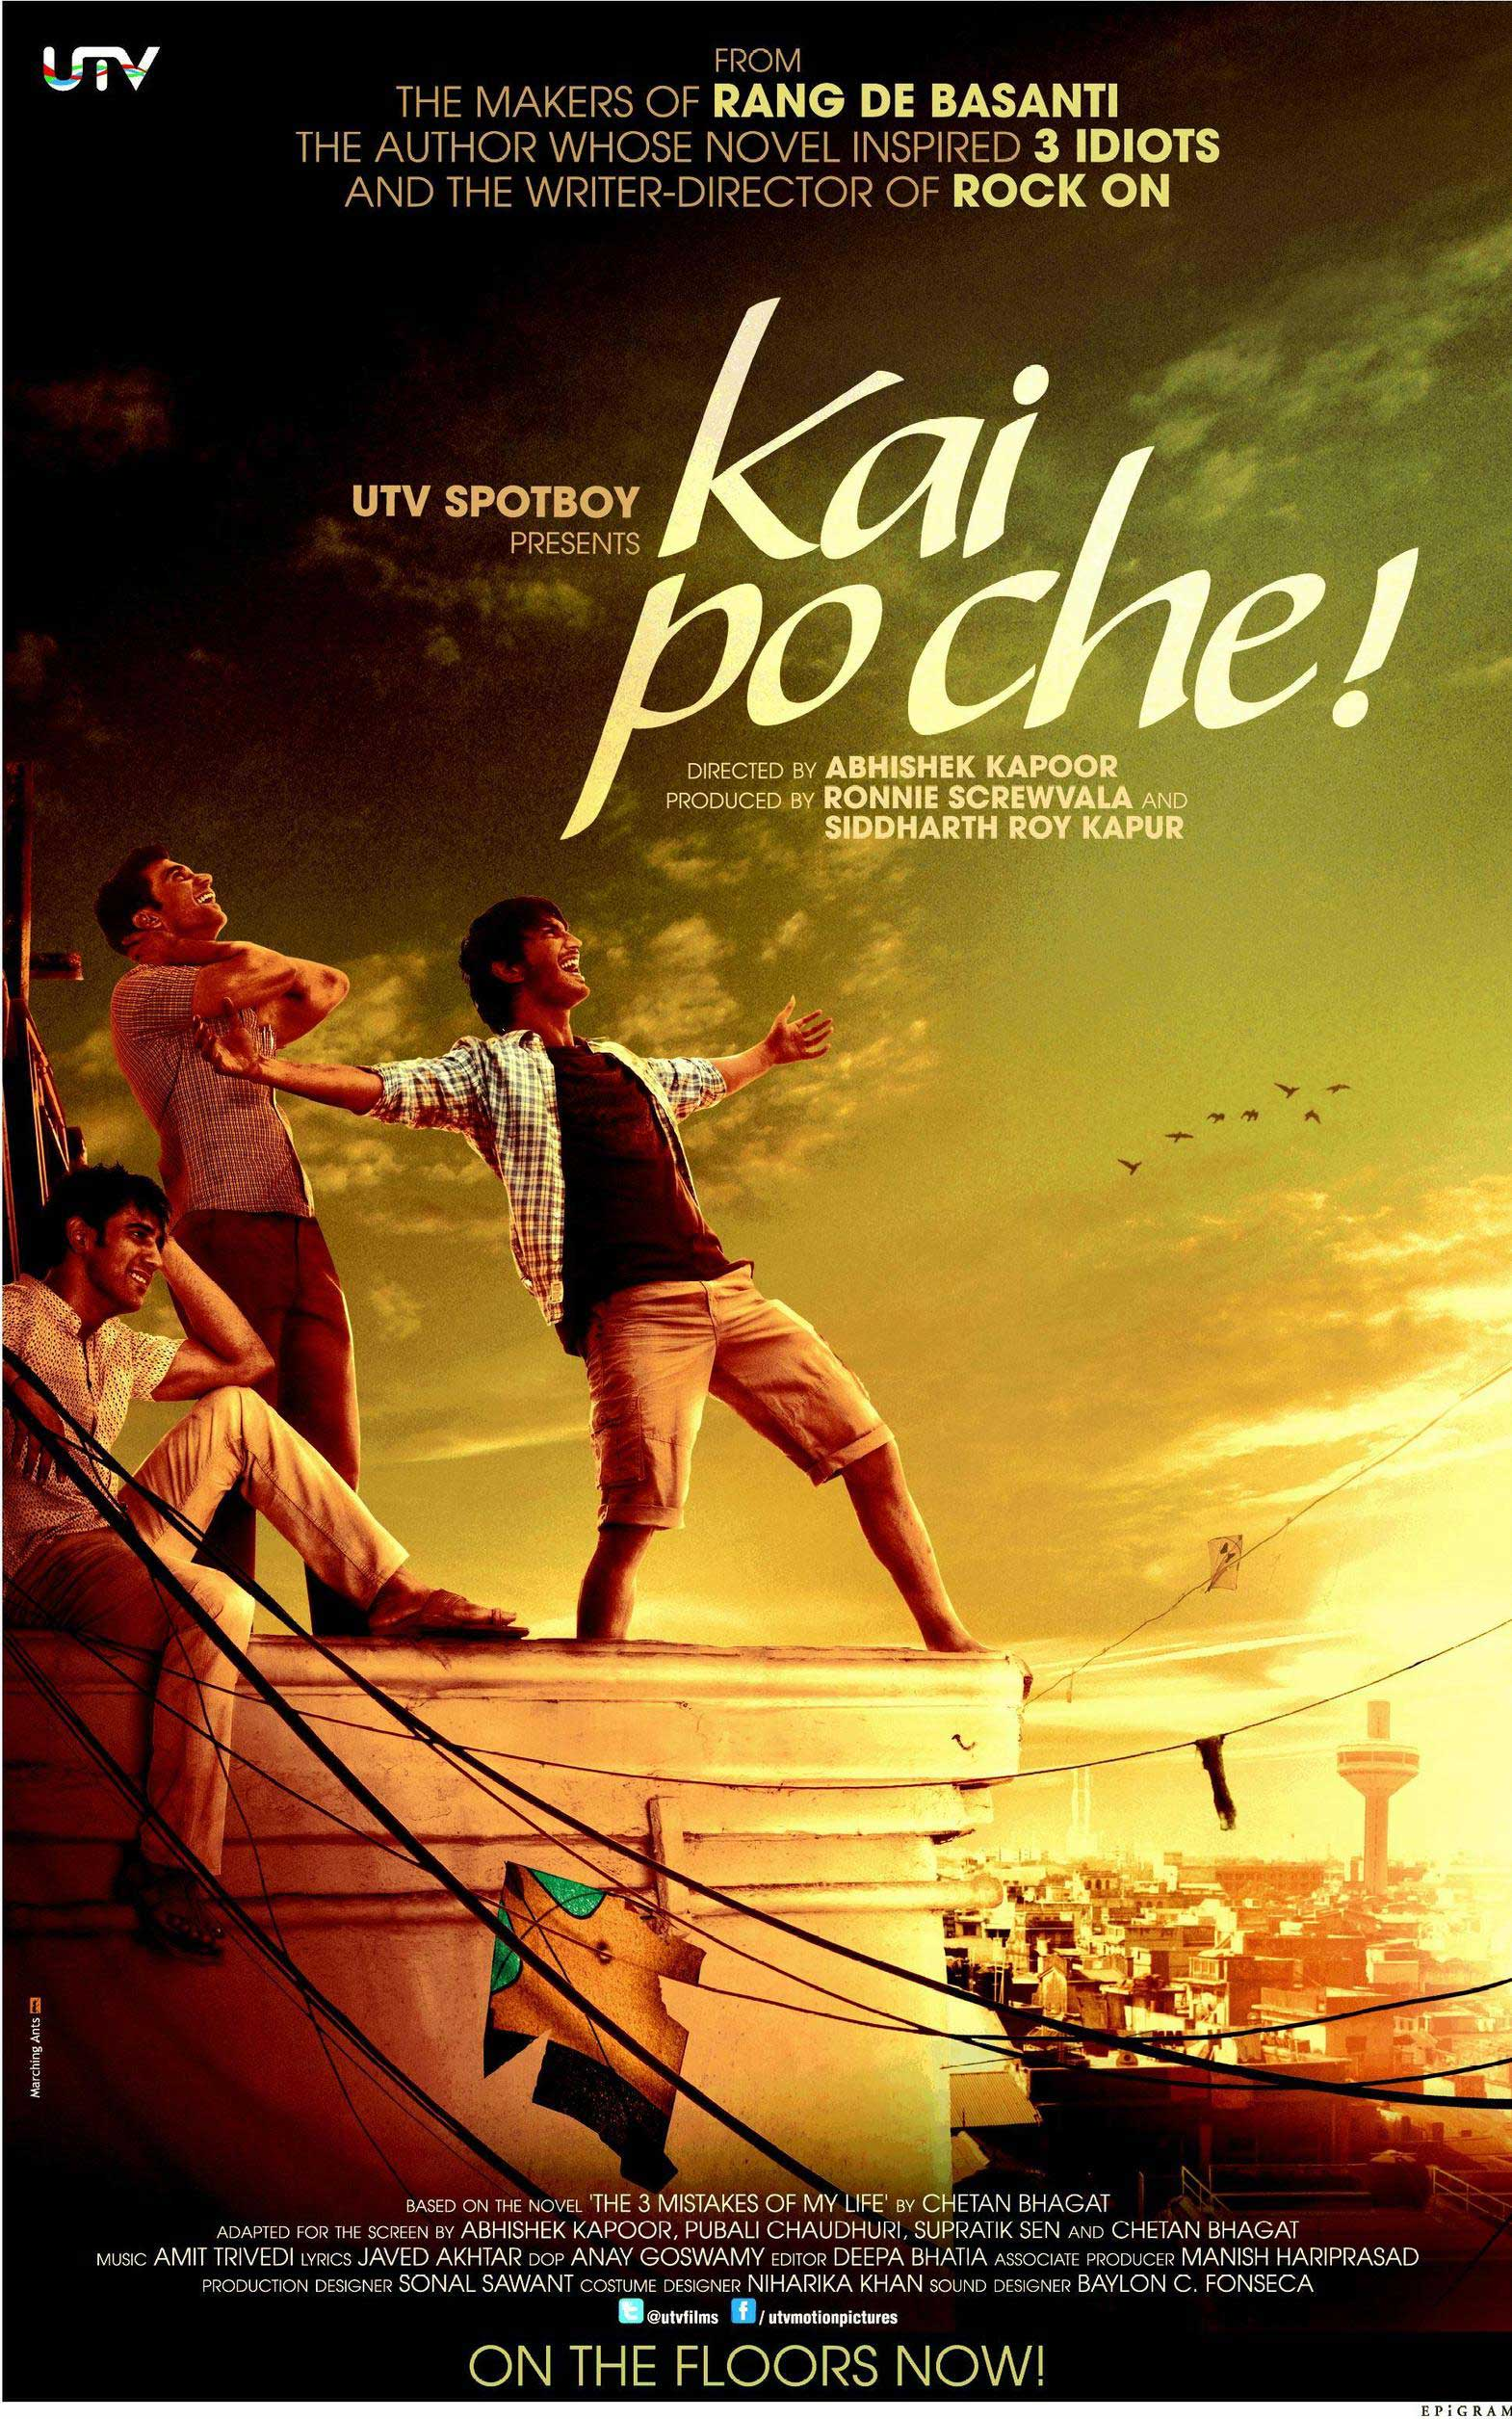 kai-po-che-movie-poster-1